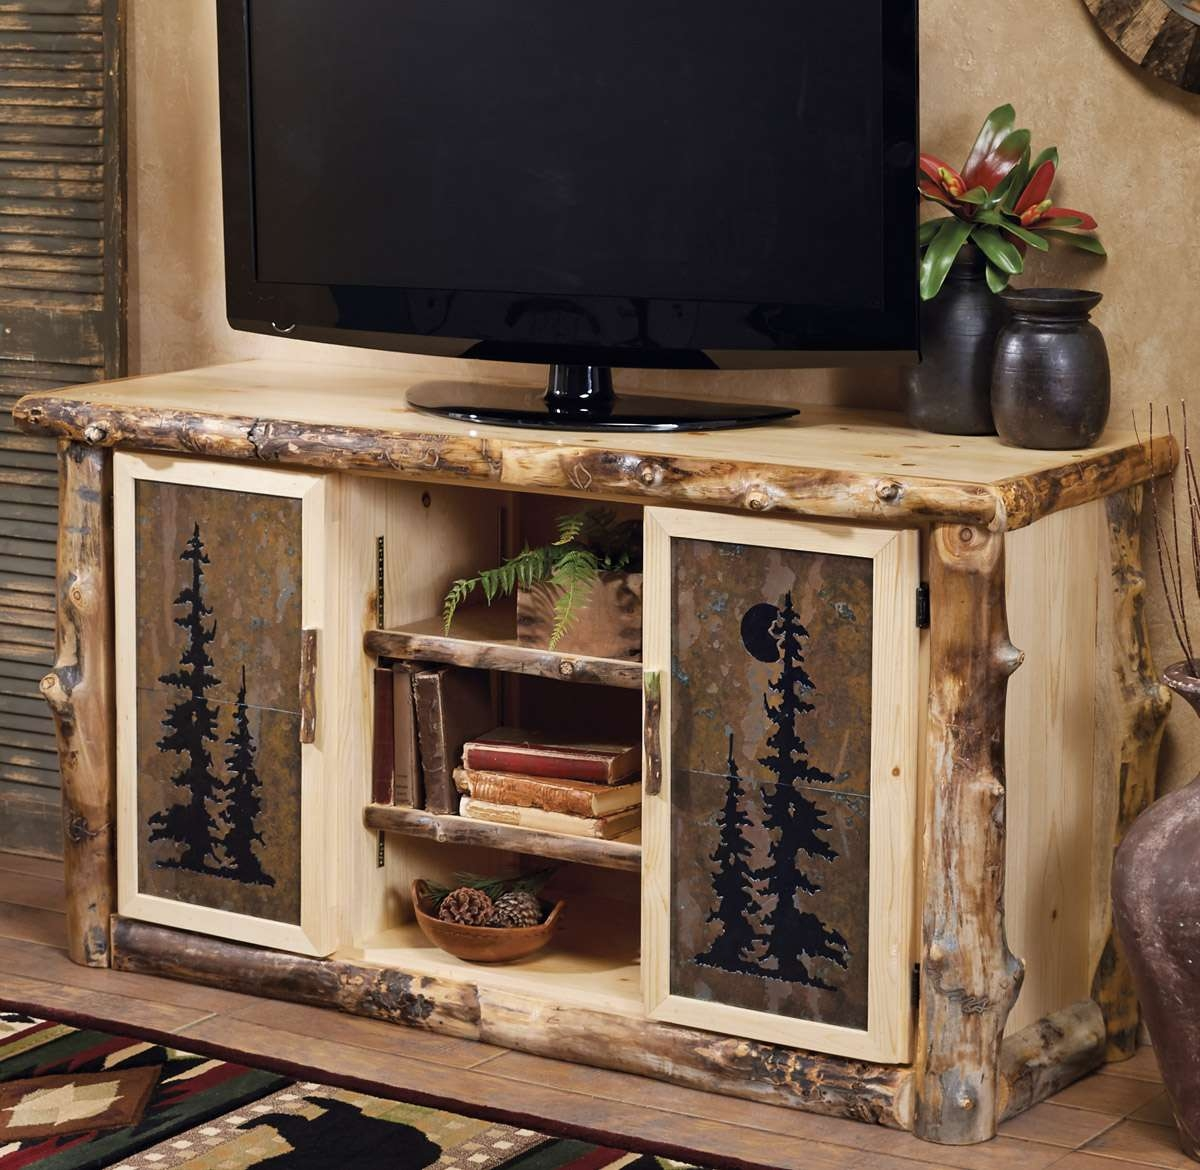 Surprising Inspiration Rustic Tv Cabinet Simple Decoration Rustic Inside Rustic Pine Tv Cabinets (View 10 of 20)